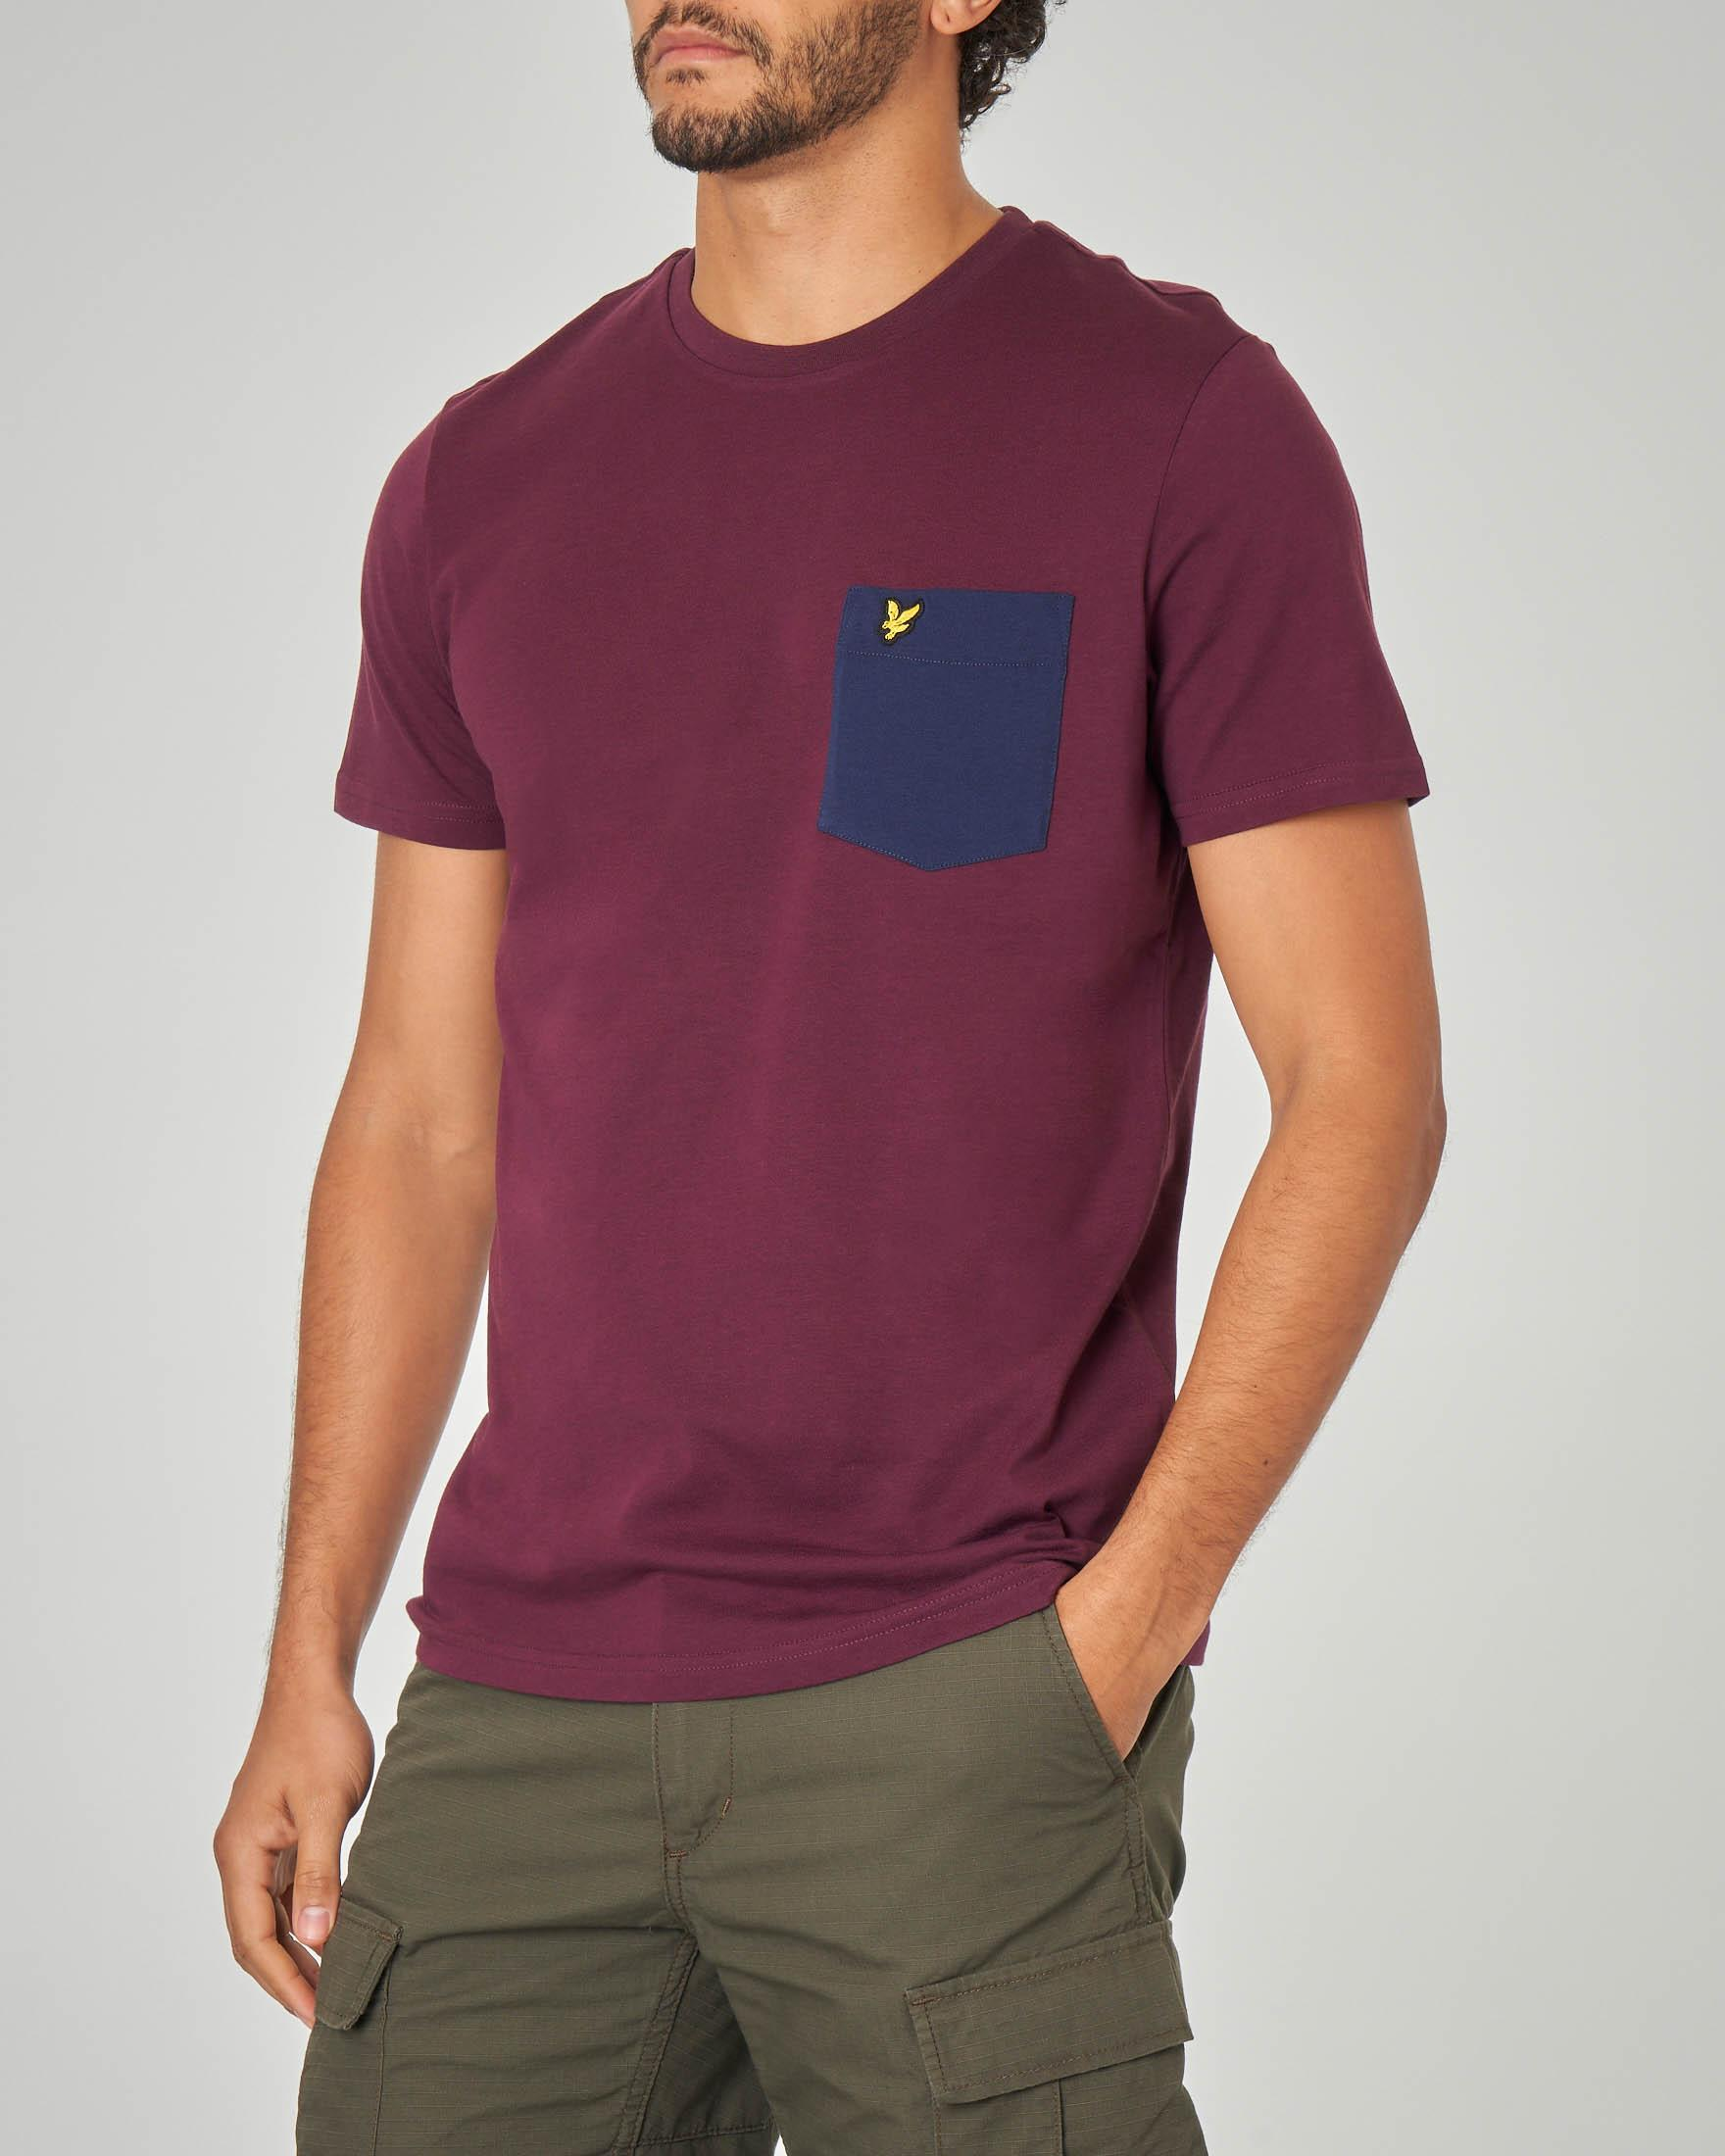 T-shirt bordeaux con taschino blu